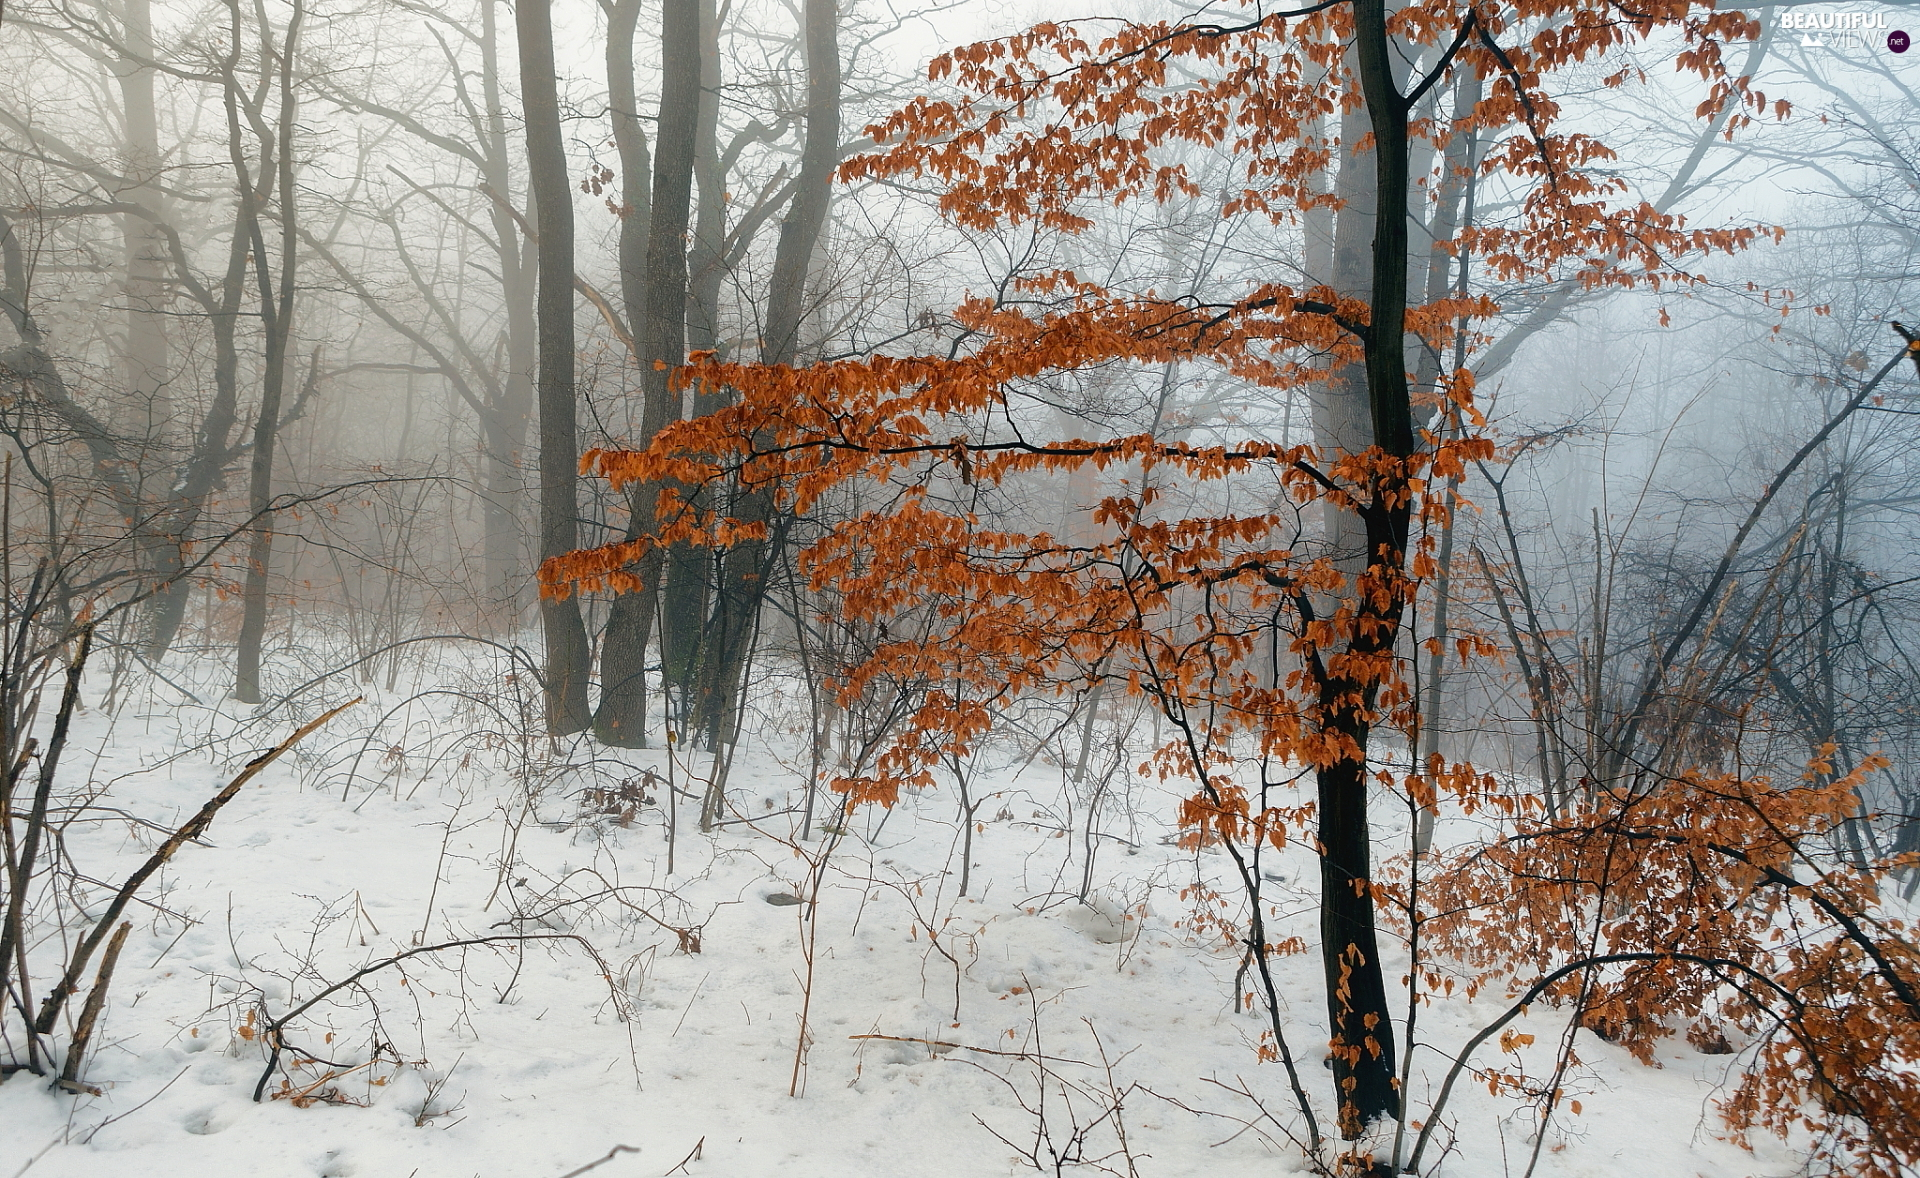 viewes, forest, branch pics, trees, winter, Bushes, Fog